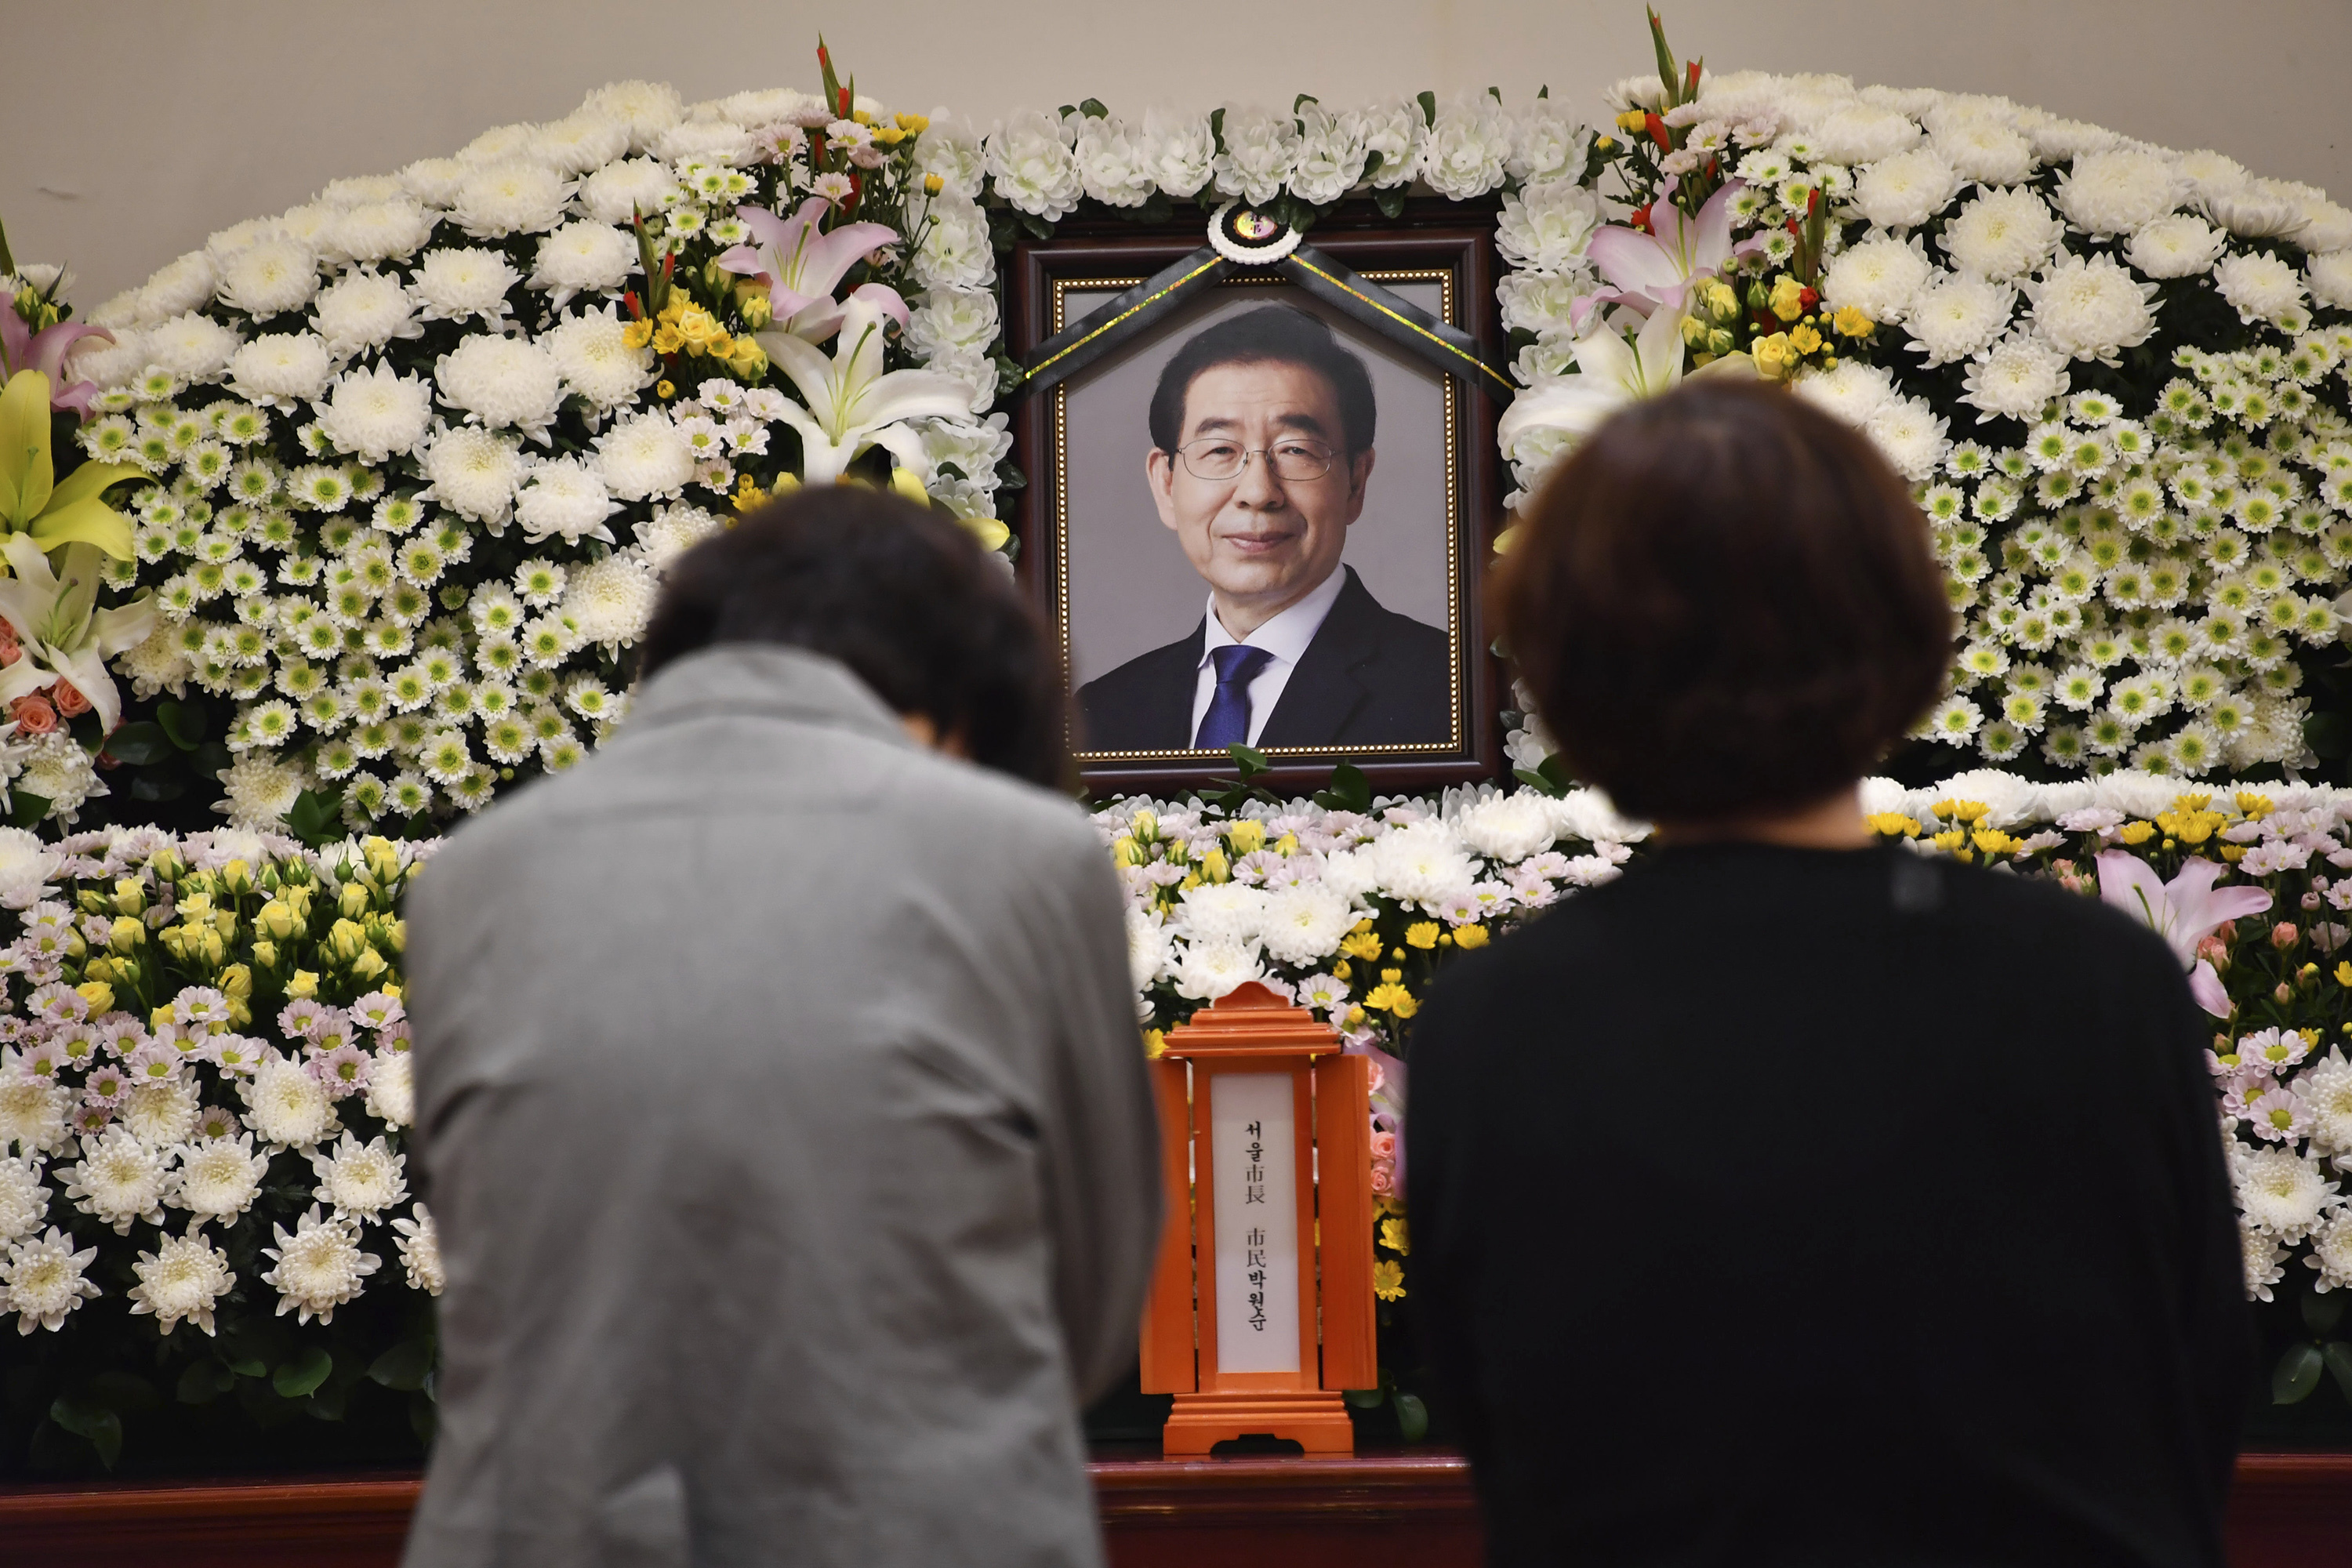 Seoul mayors death prompts sympathy, questions of his acts